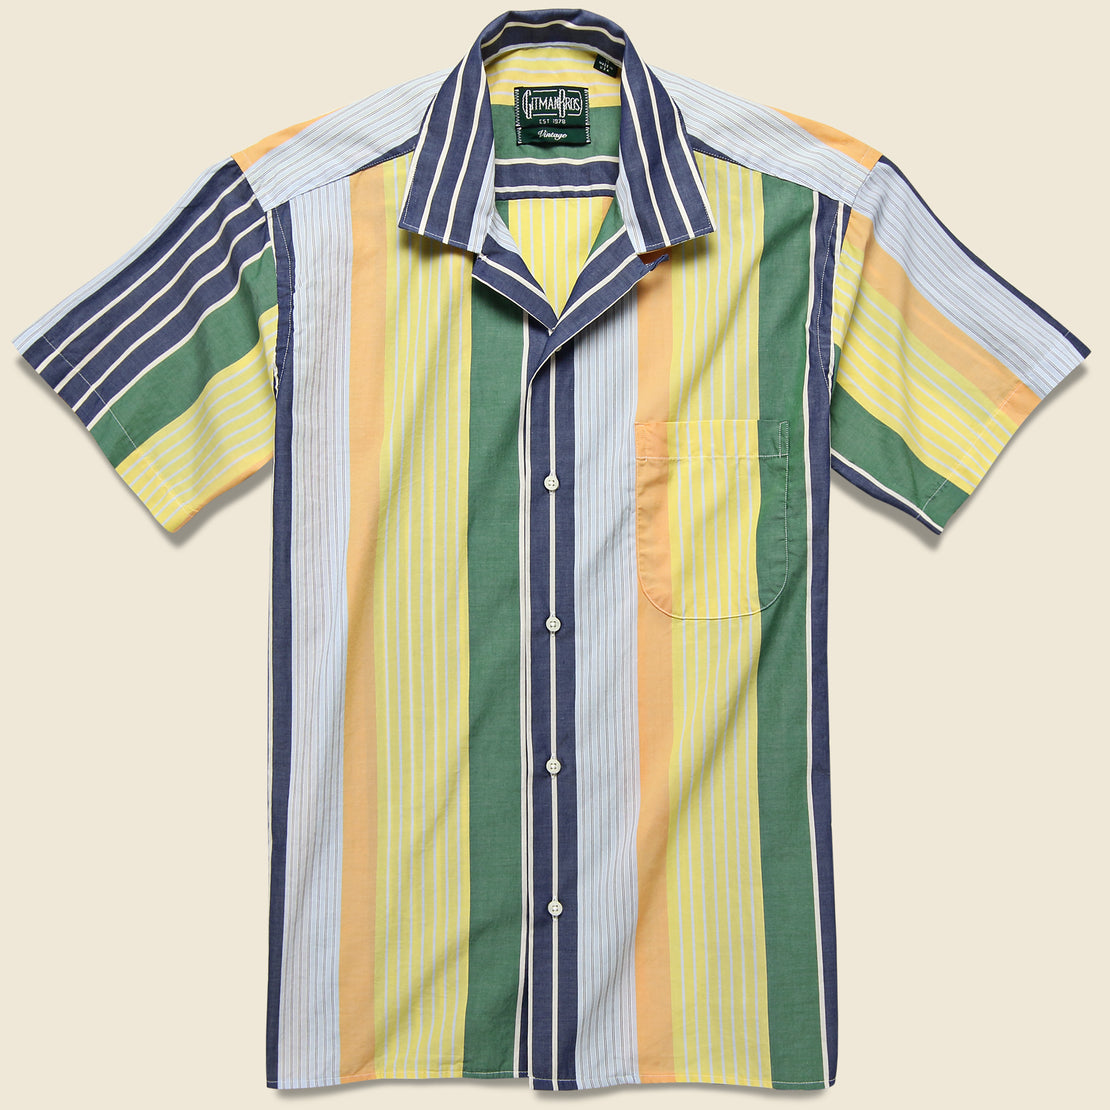 Gitman Vintage Awning Stripe Camp Shirt - Multi